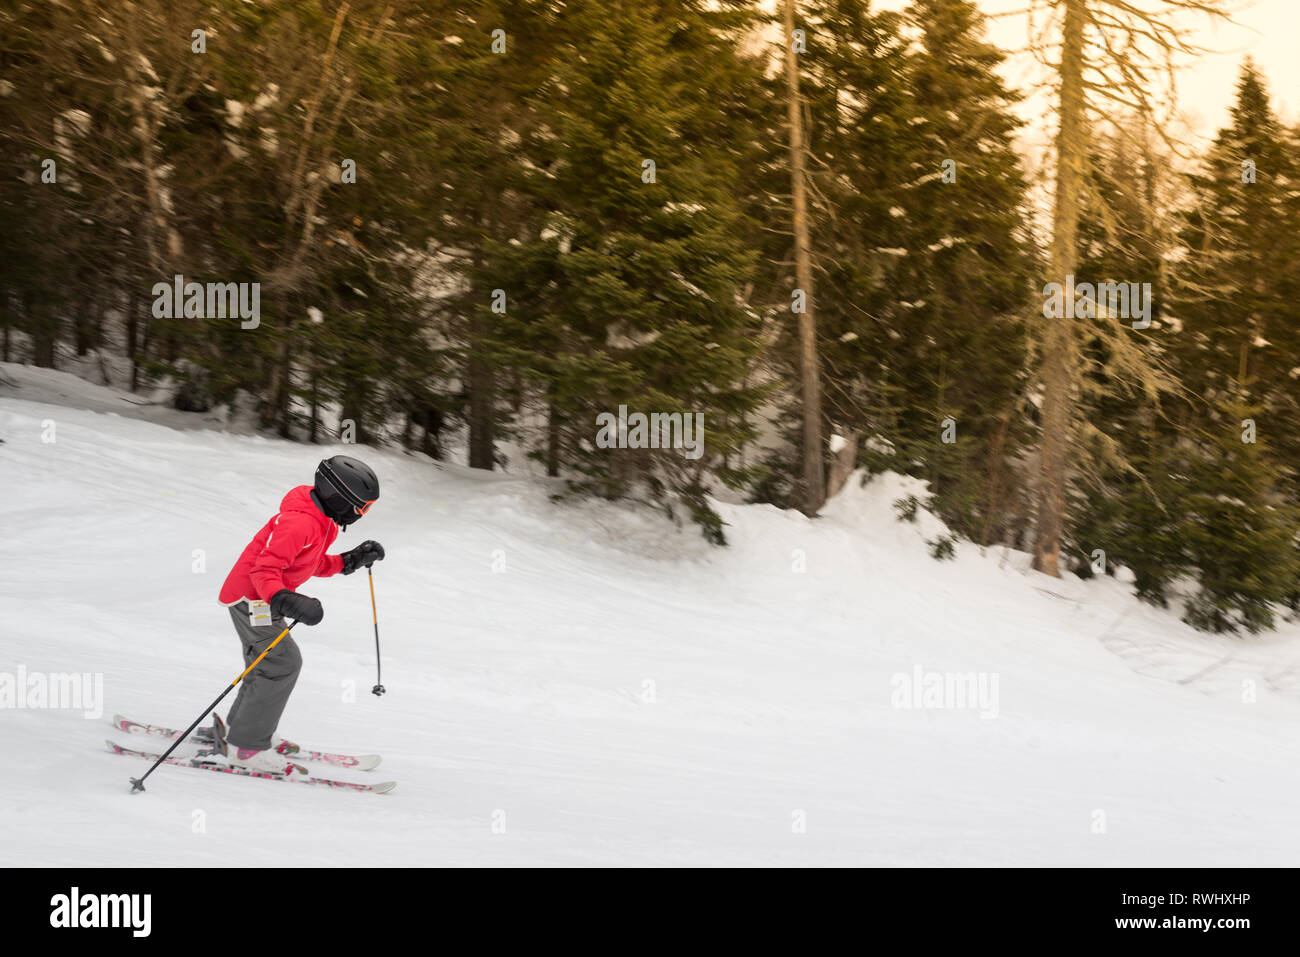 a6304f6557b1 Child wearing winter sports gear skis down a mountain Stock Photo ...